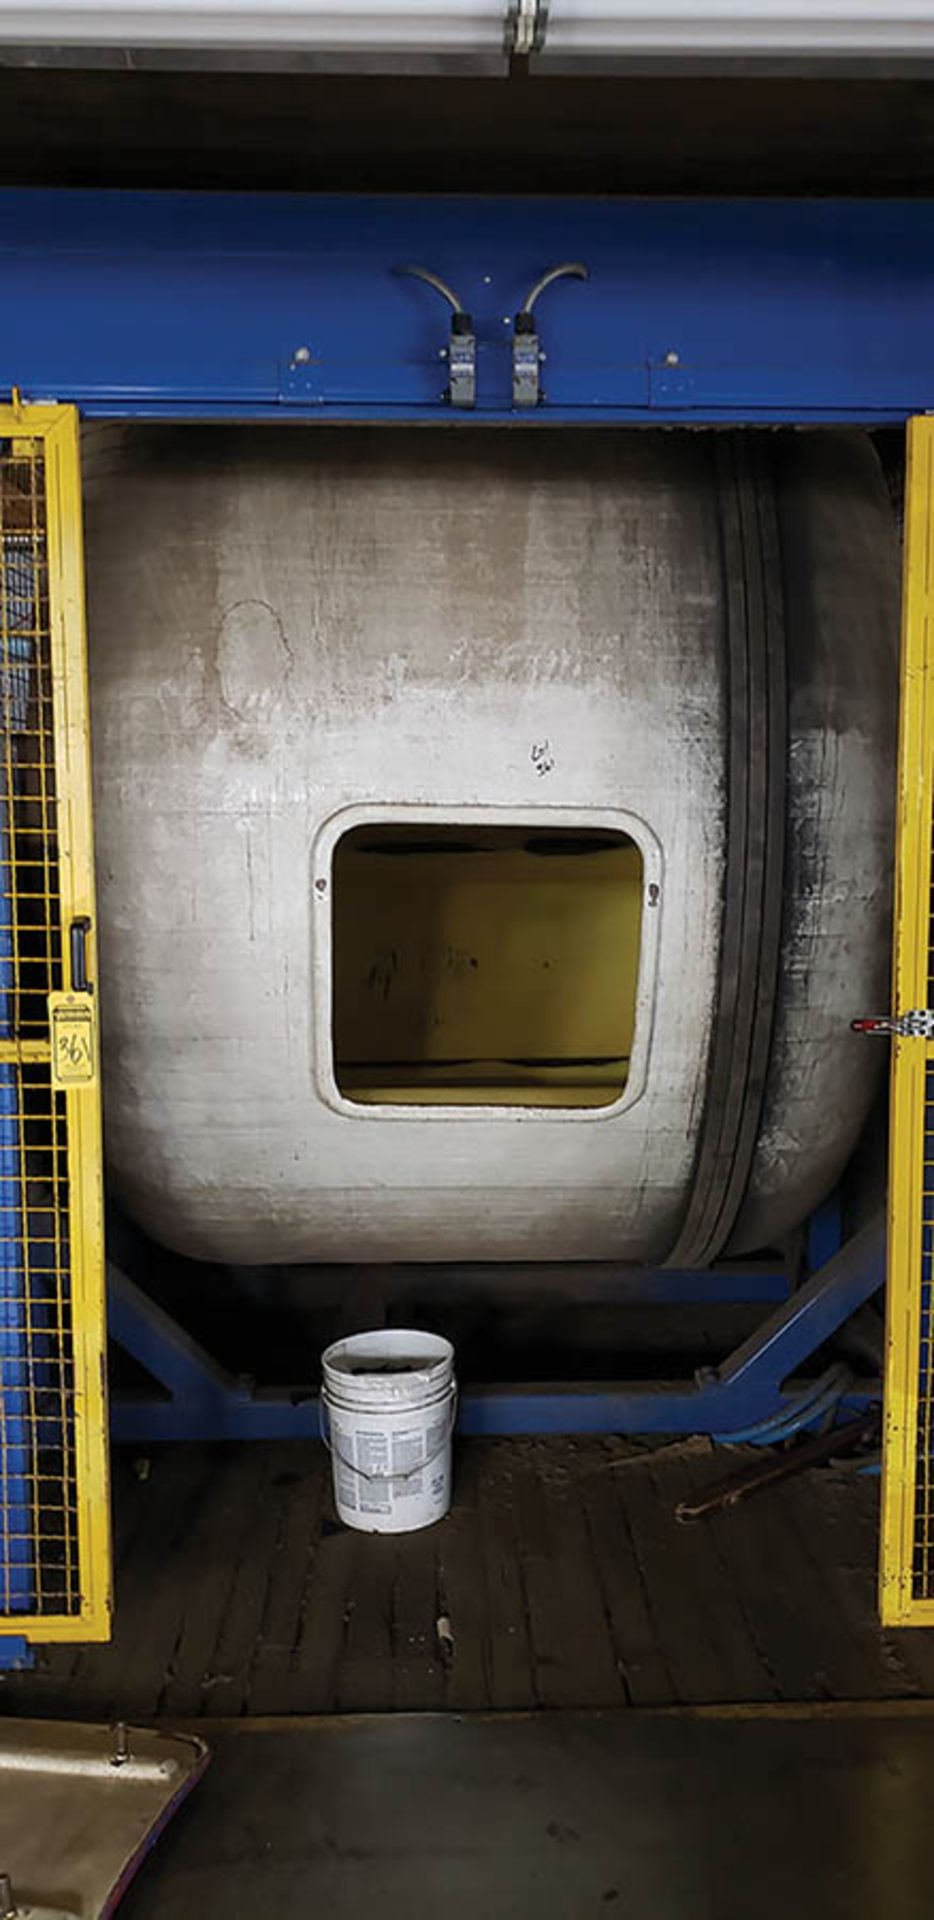 FIBERGLASS DRY MILL TUMBLER, MADE IN HOUSE, 7.5' X 5', (FINISH BUILDING)